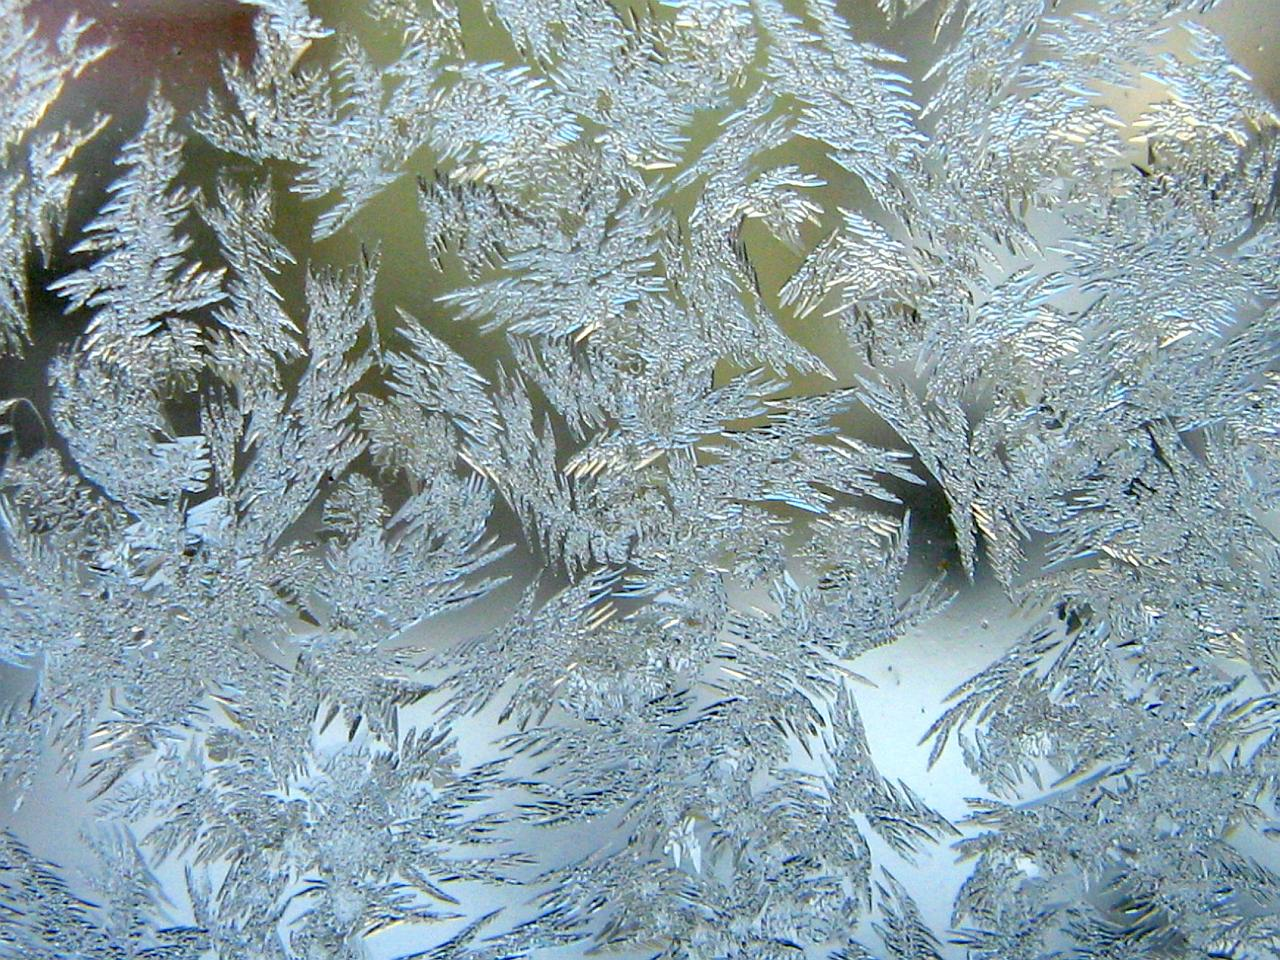 frost on glass wallpapers - photo #19